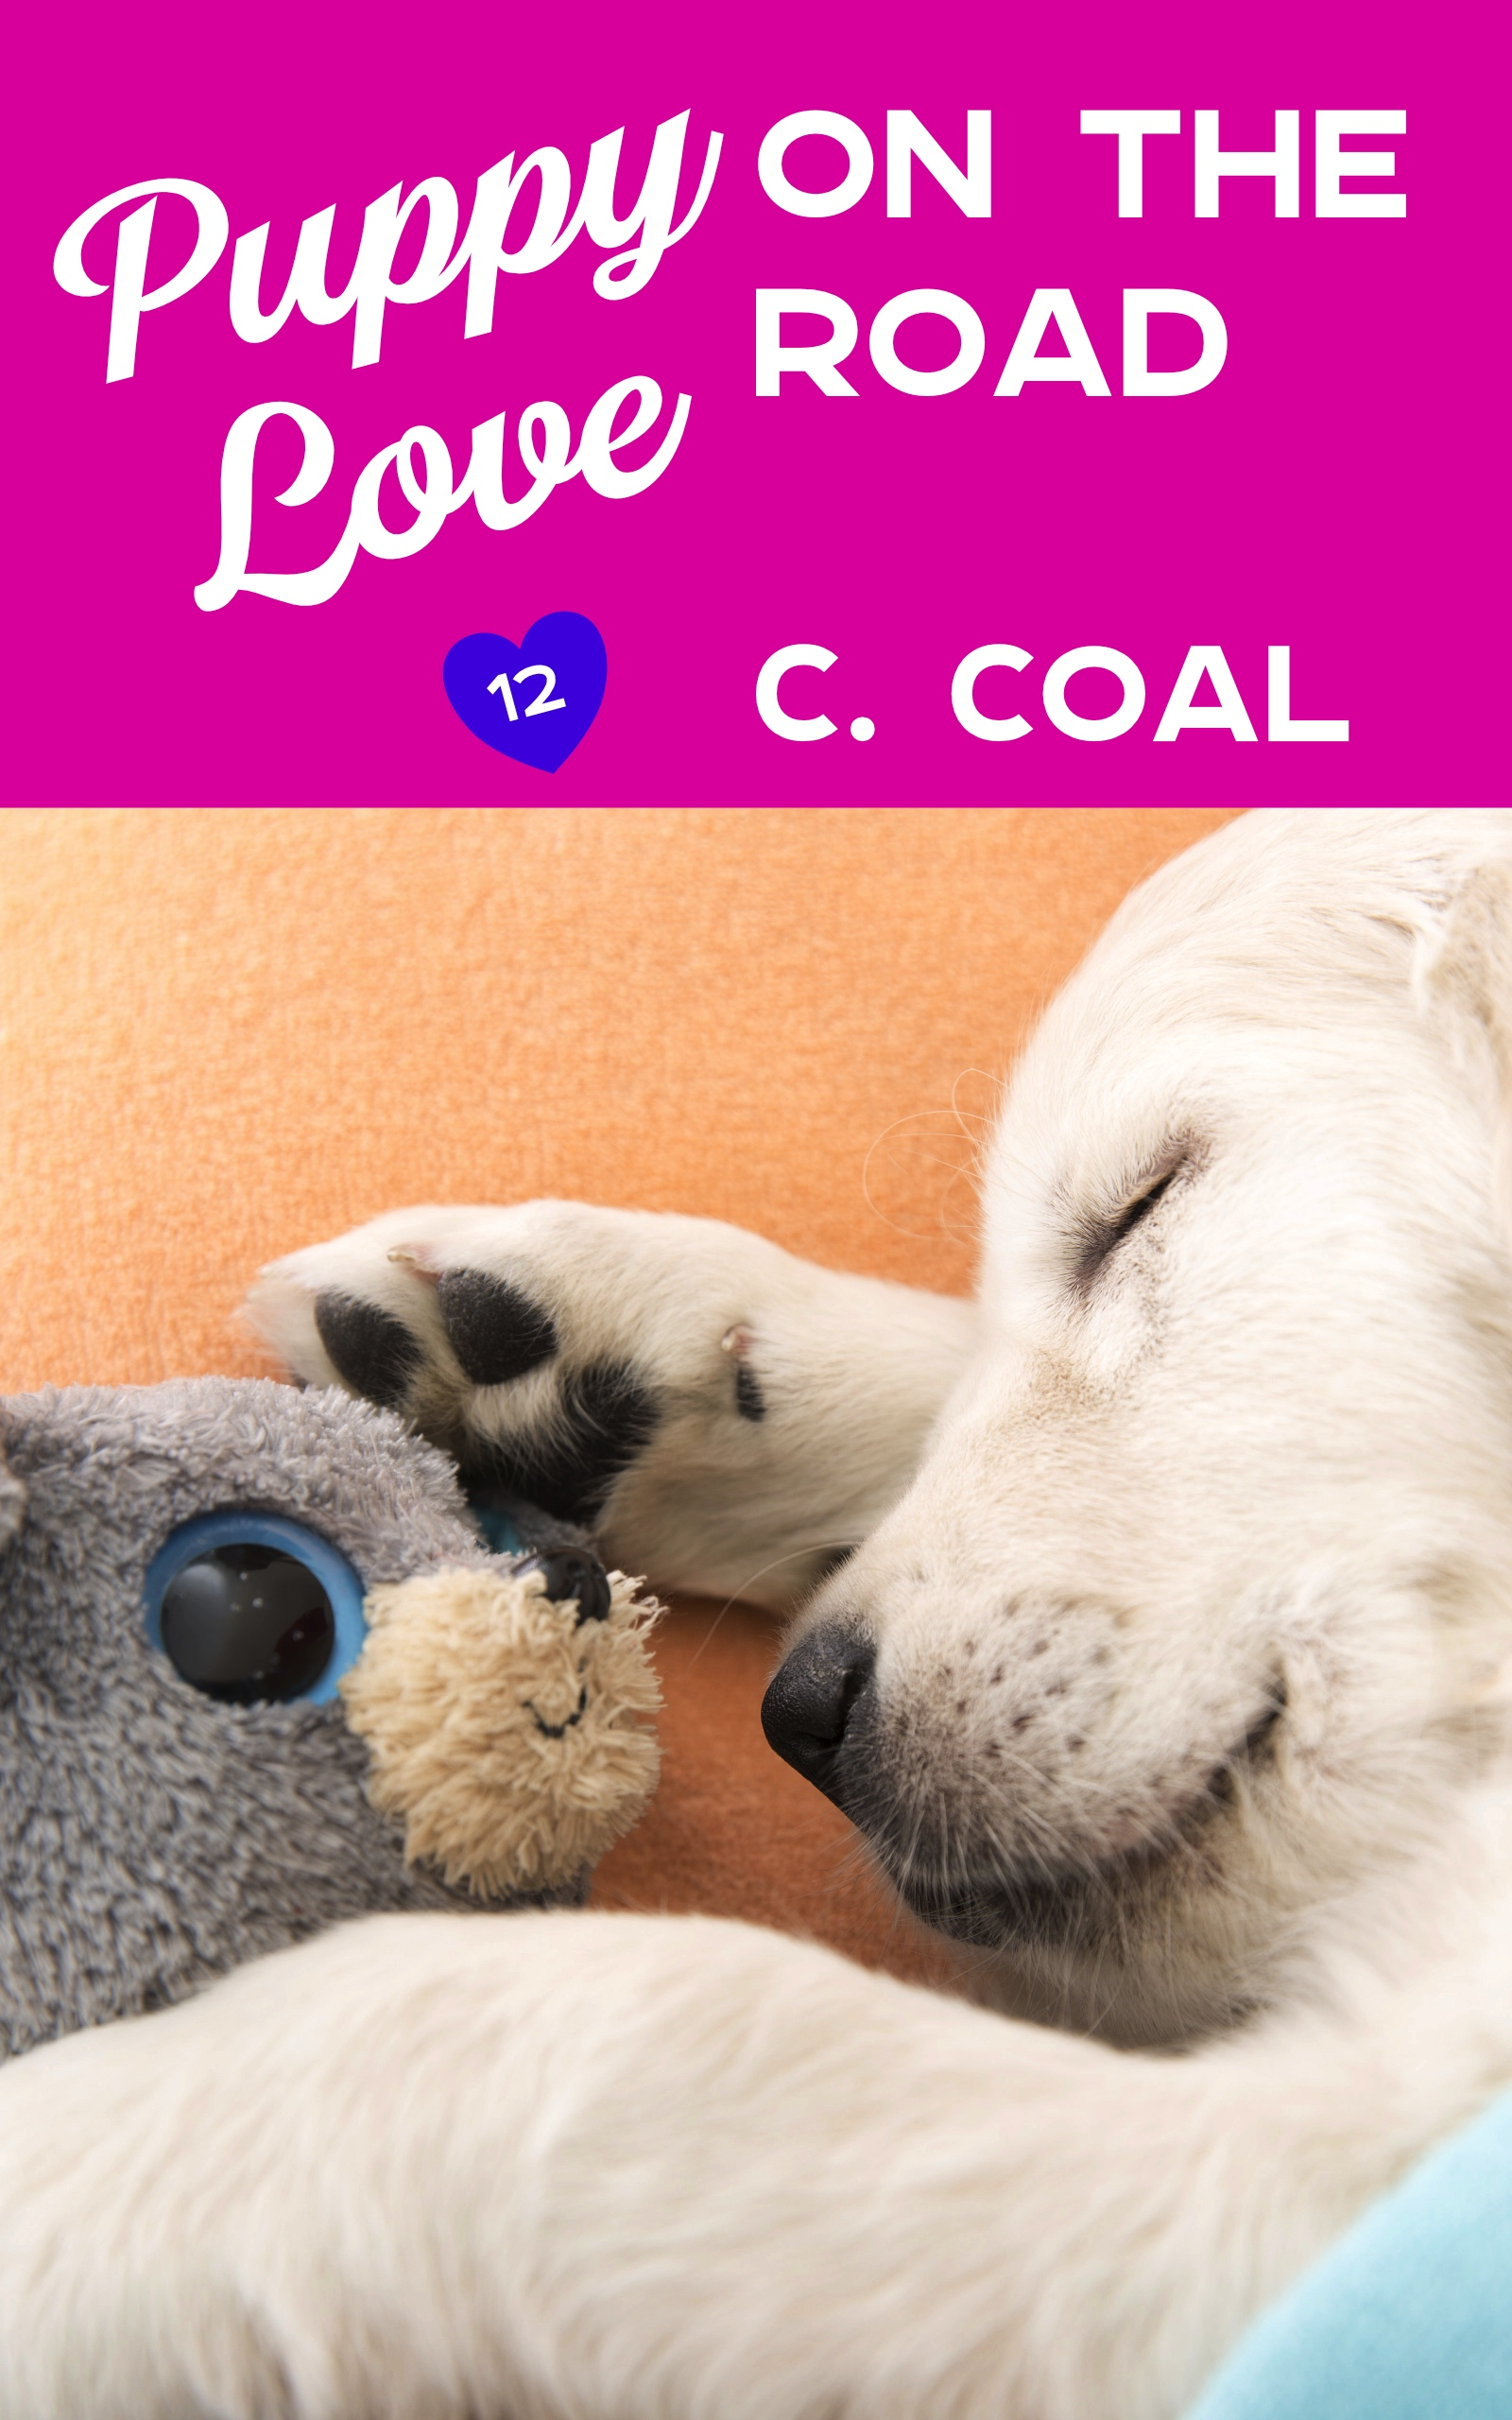 Puppy Love On the Road (Puppy Love, #12)